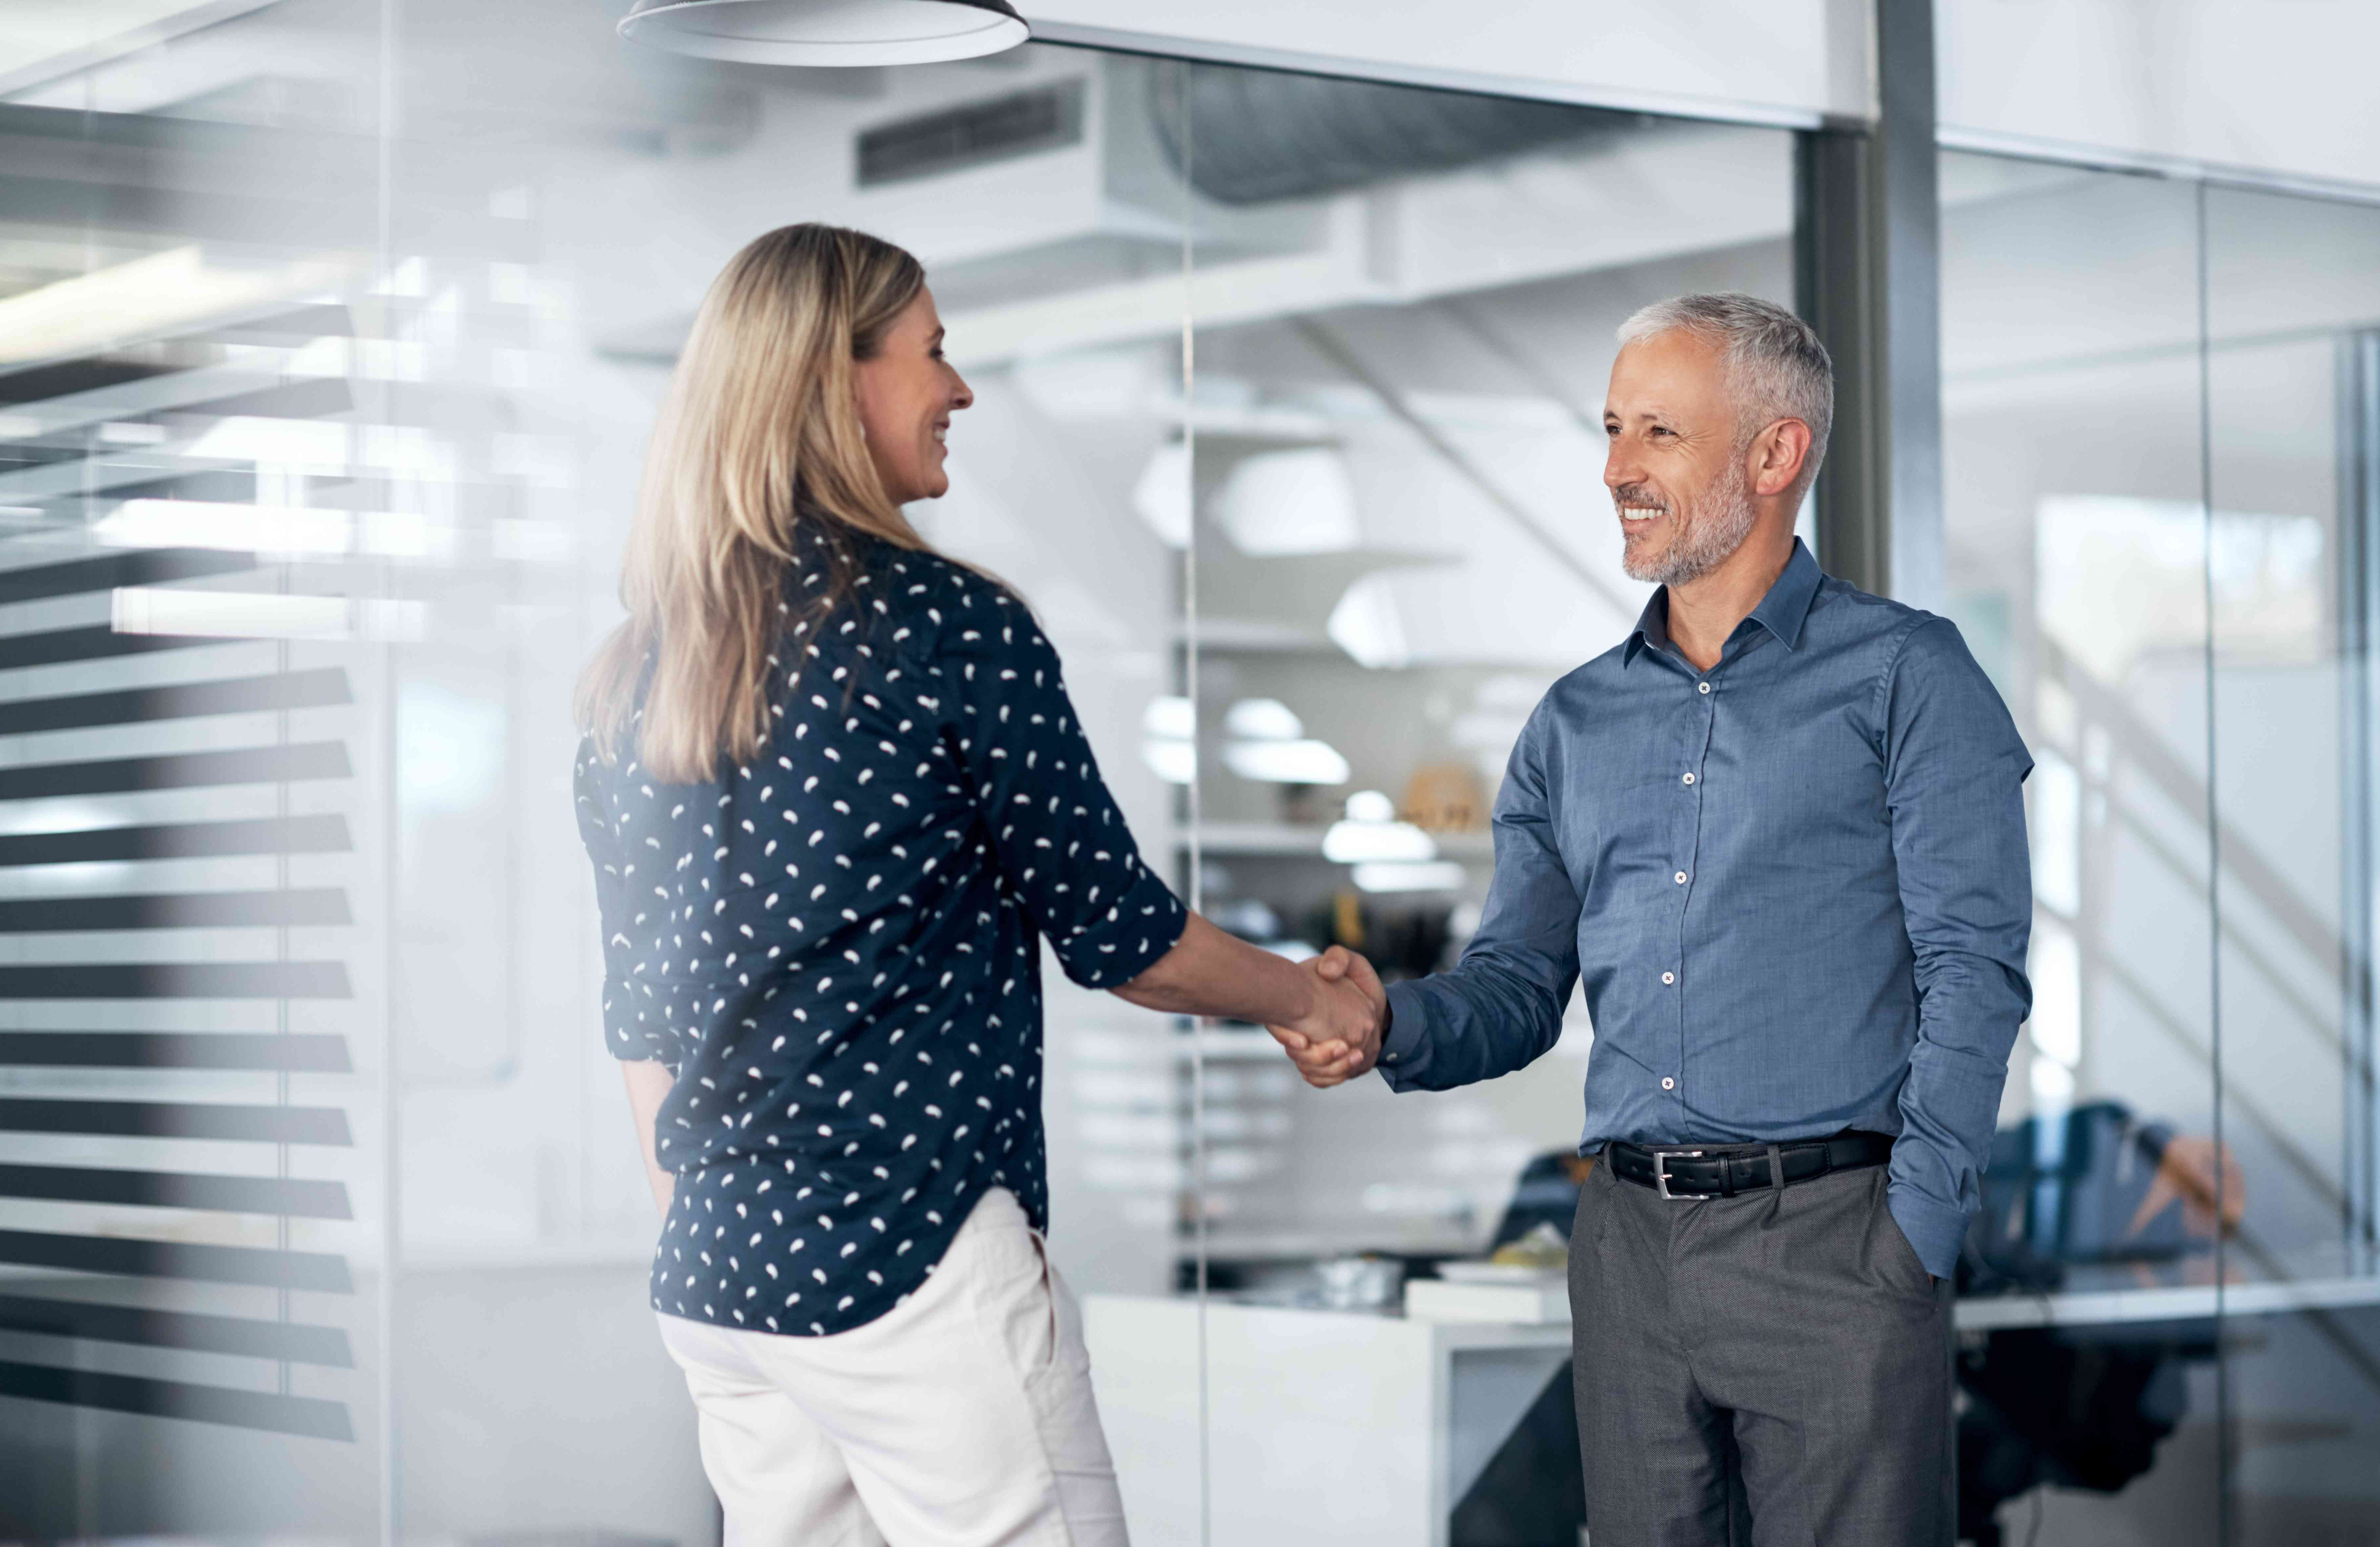 Man and woman shaking hands in a business office.